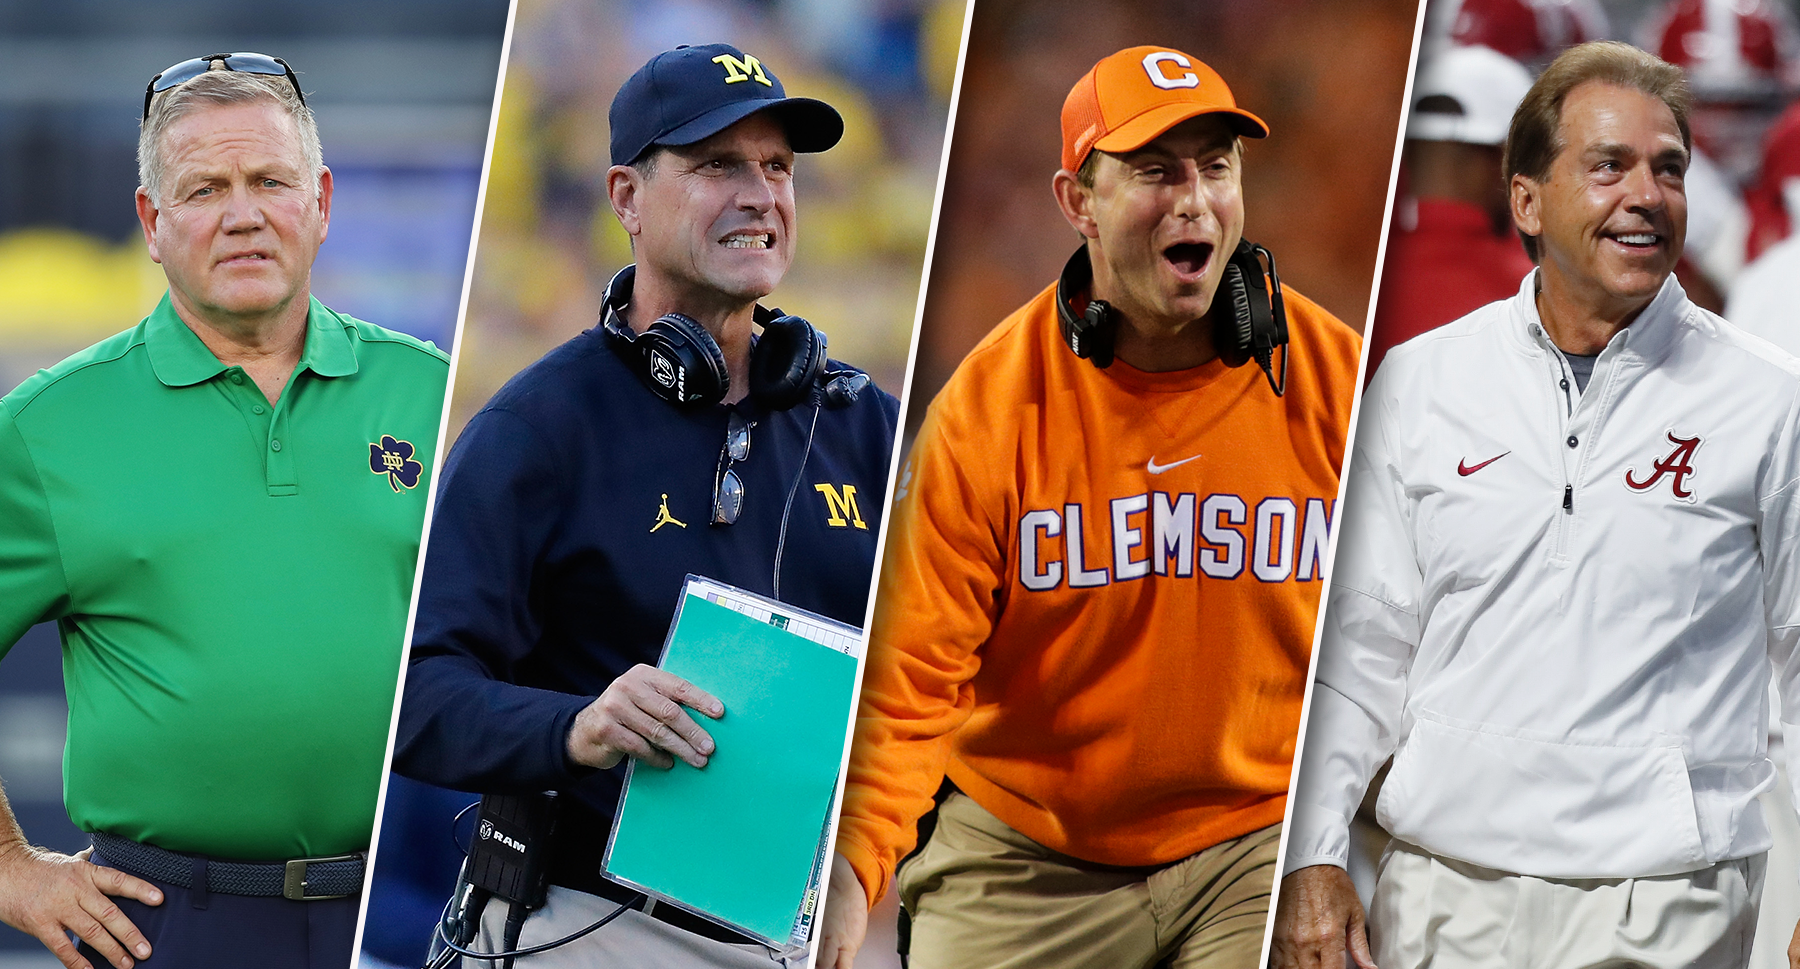 2019 College Football Schedule: 40 Things To Know